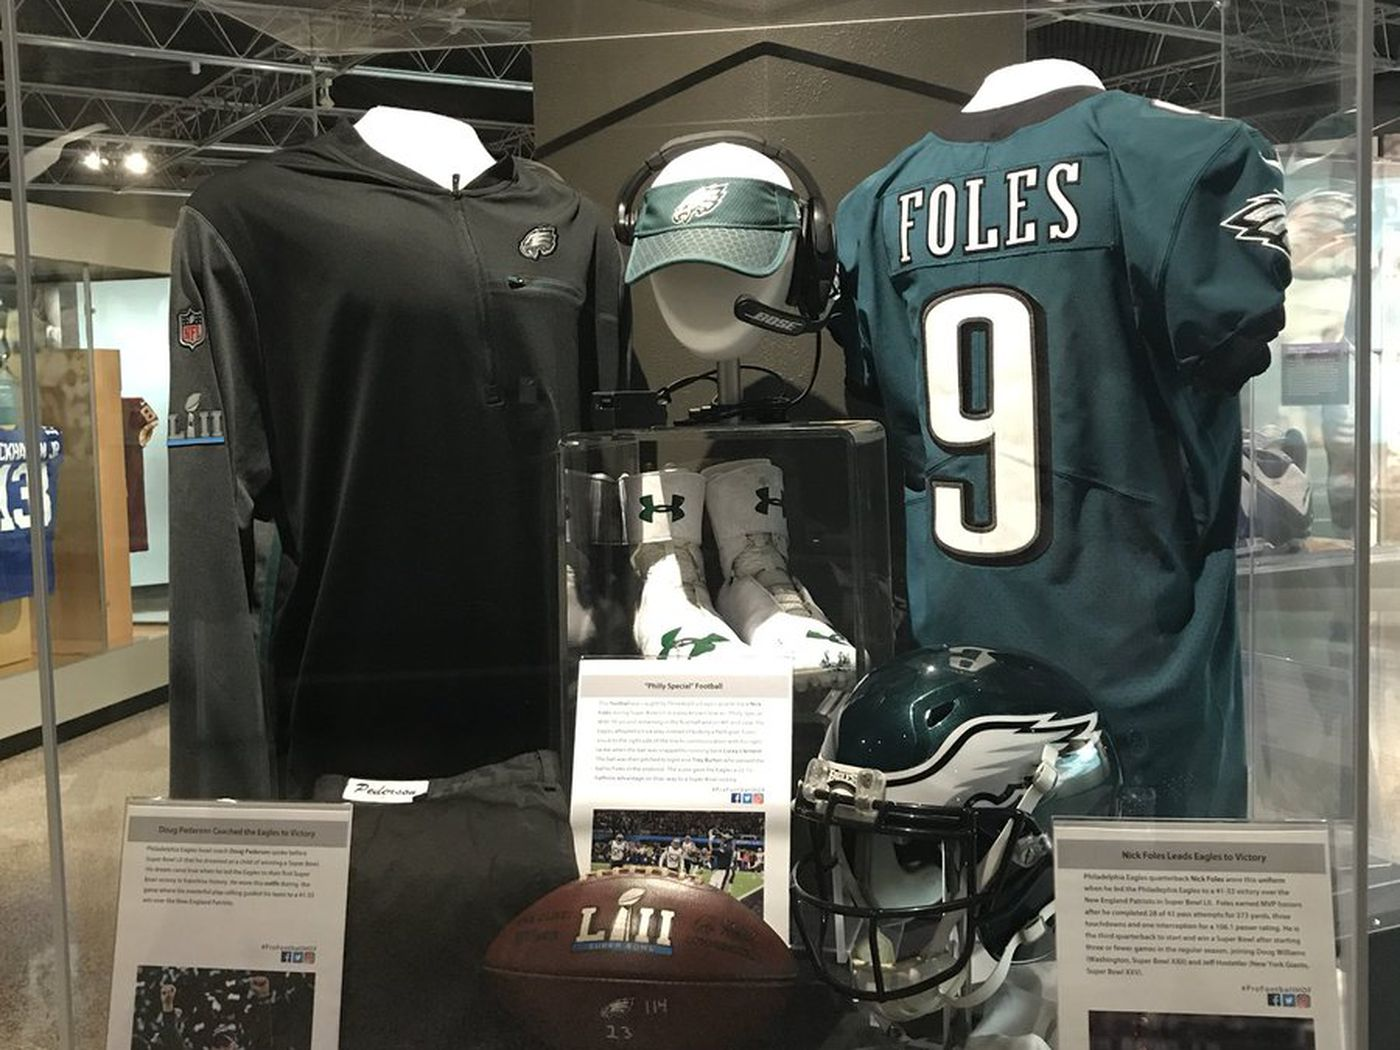 fab5c9dbefb Nick Foles now has another jersey in the Pro Football Hall of Fame -  Bleeding Green Nation